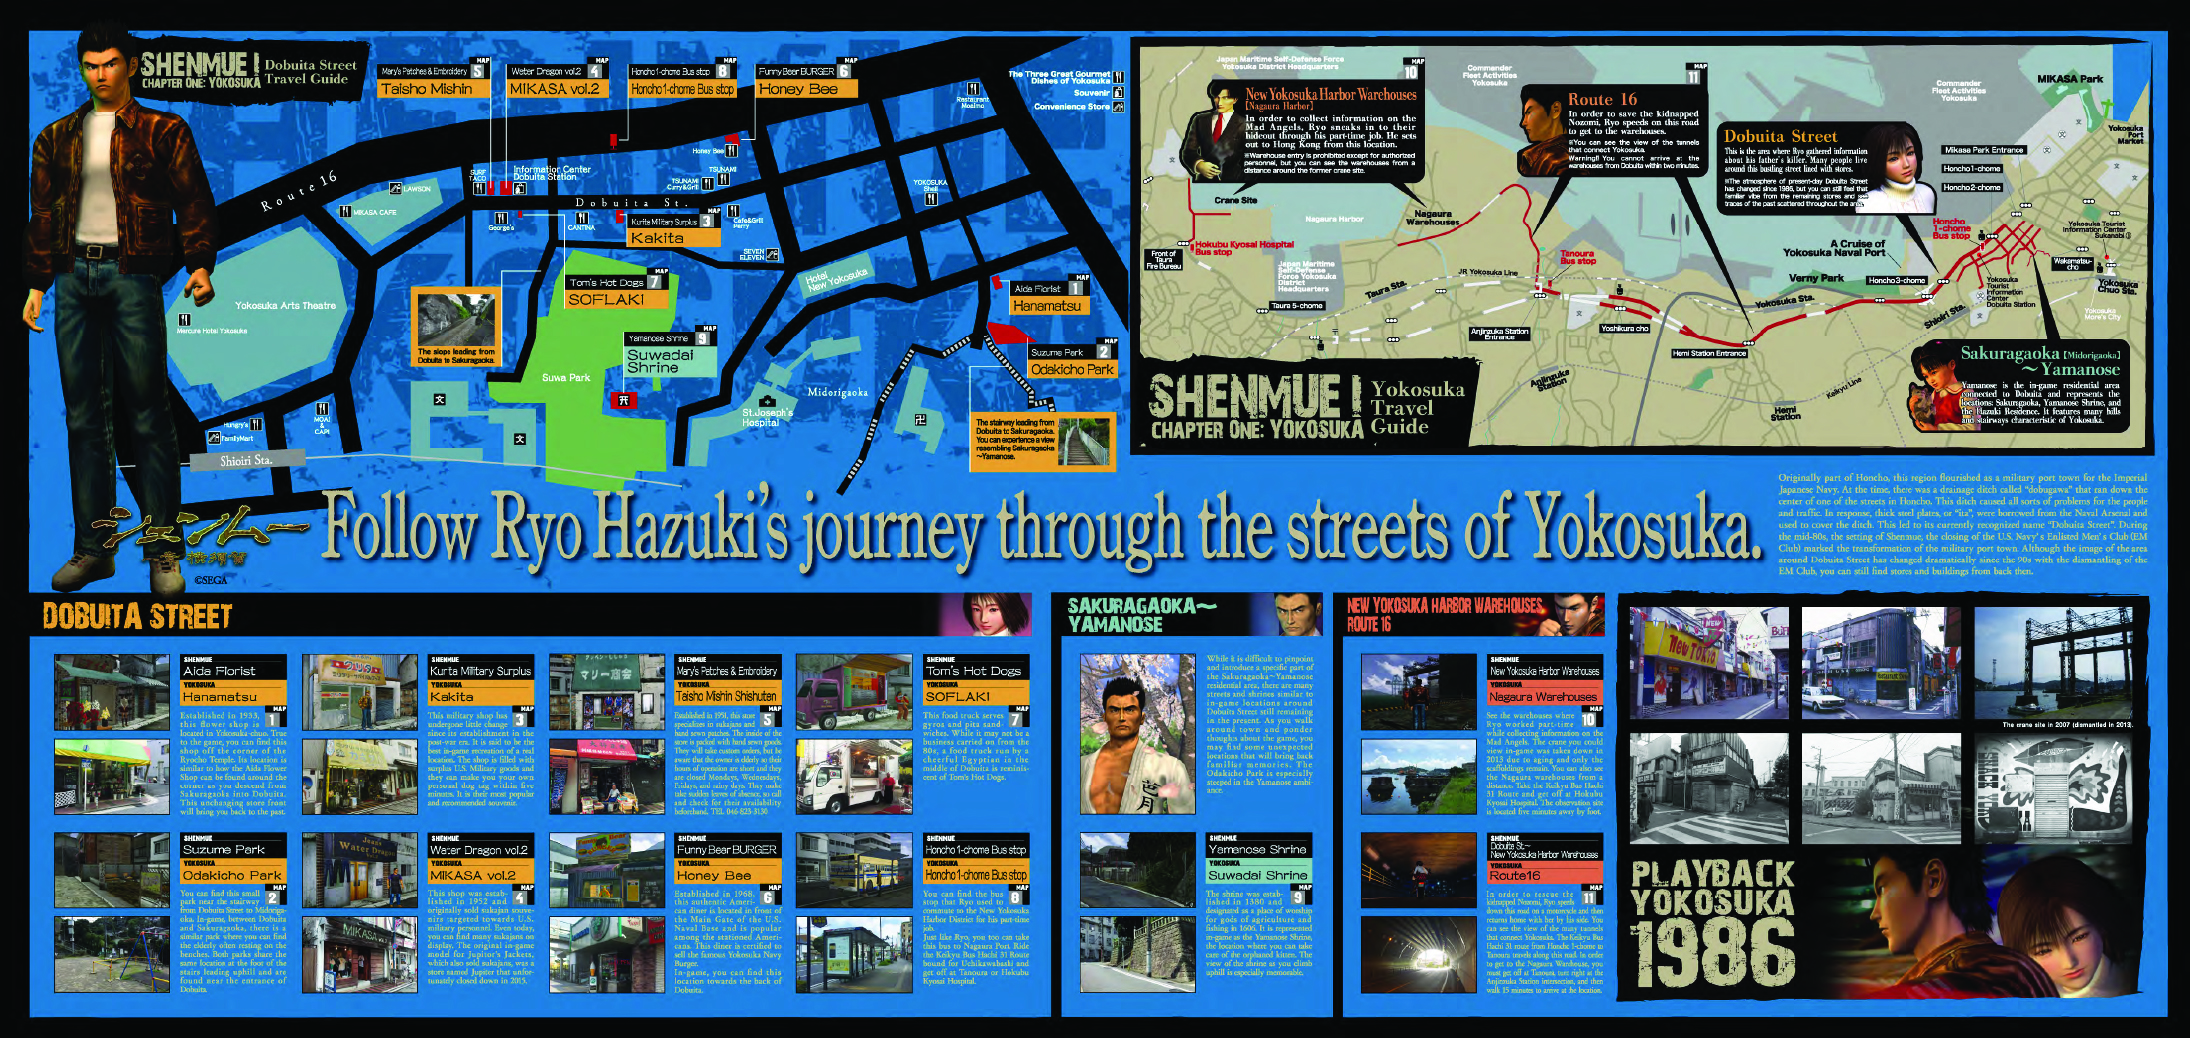 Check out the Official Shenmue themed Yokosuka Tourist Guide